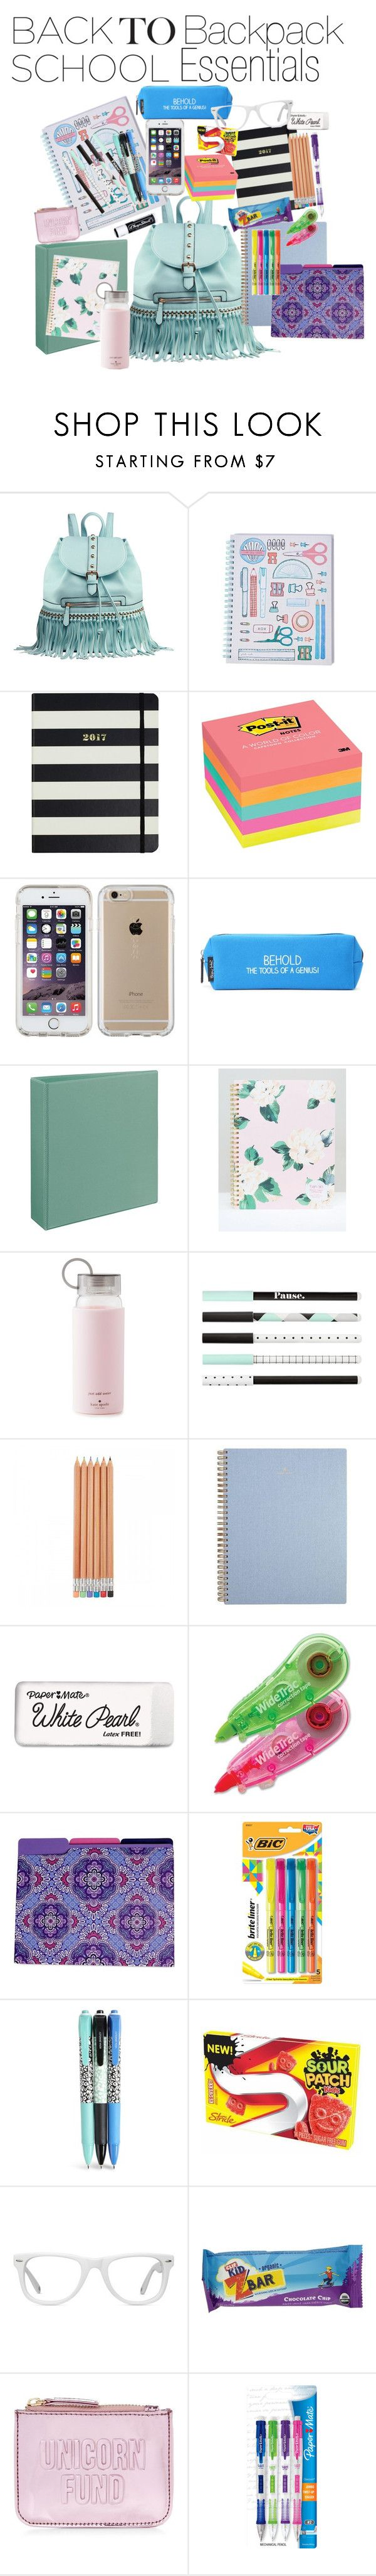 """Back to school 2016- backpack essentials"" by darling-ange1 ❤ liked on Polyvore featuring interior, interiors, interior design, home, home decor, interior decorating, MKF Collection, Kate Spade, Post-It and Speck"